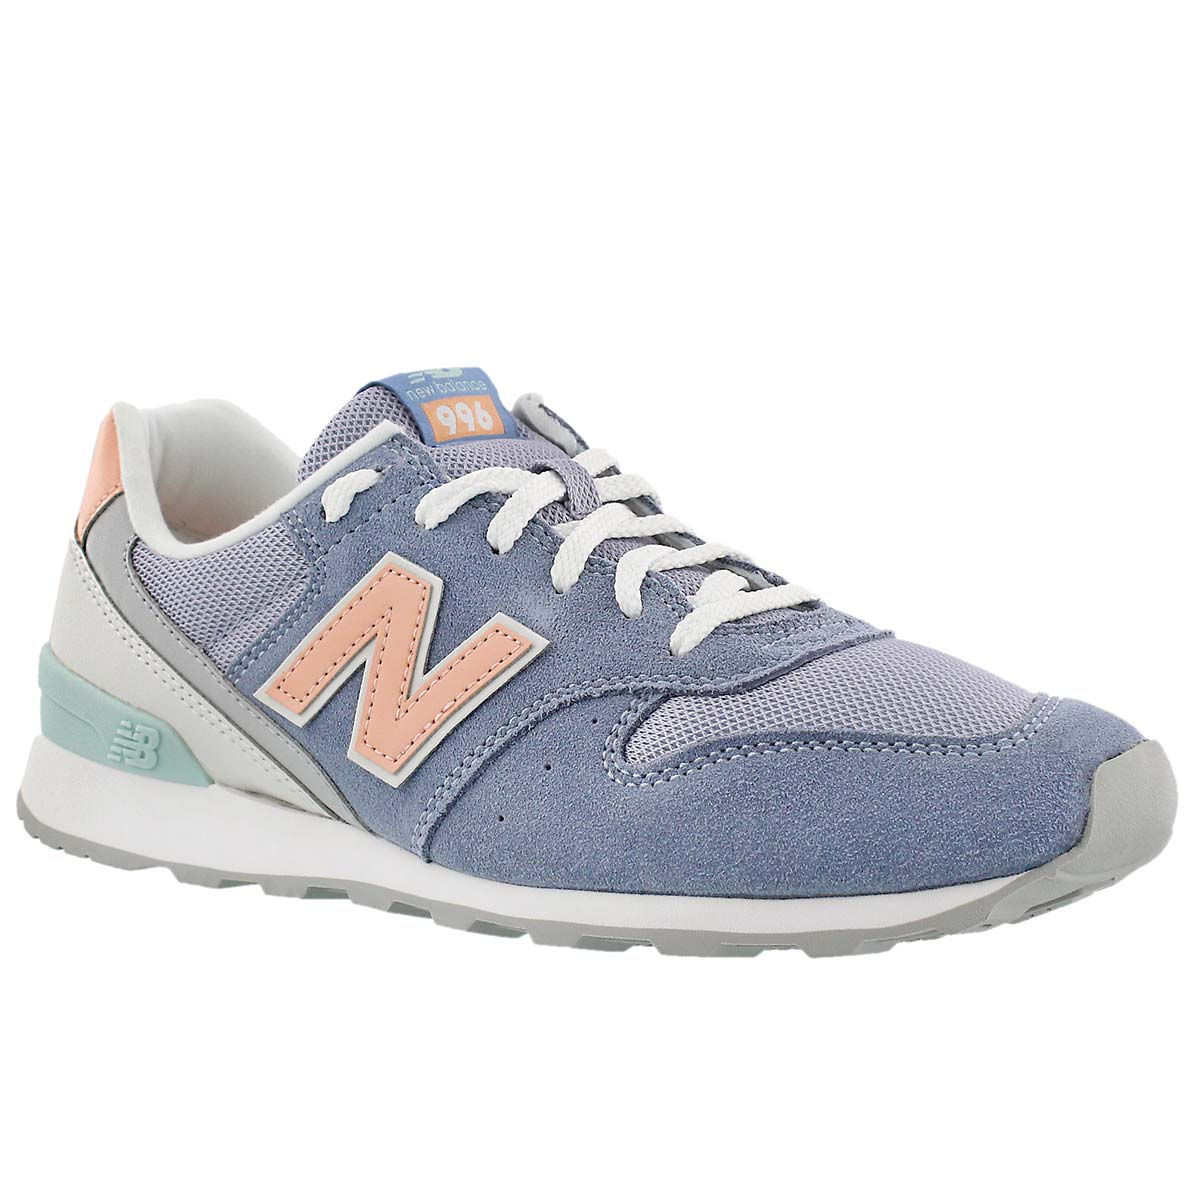 Lds 996 blue/white/orang lace up sneaker